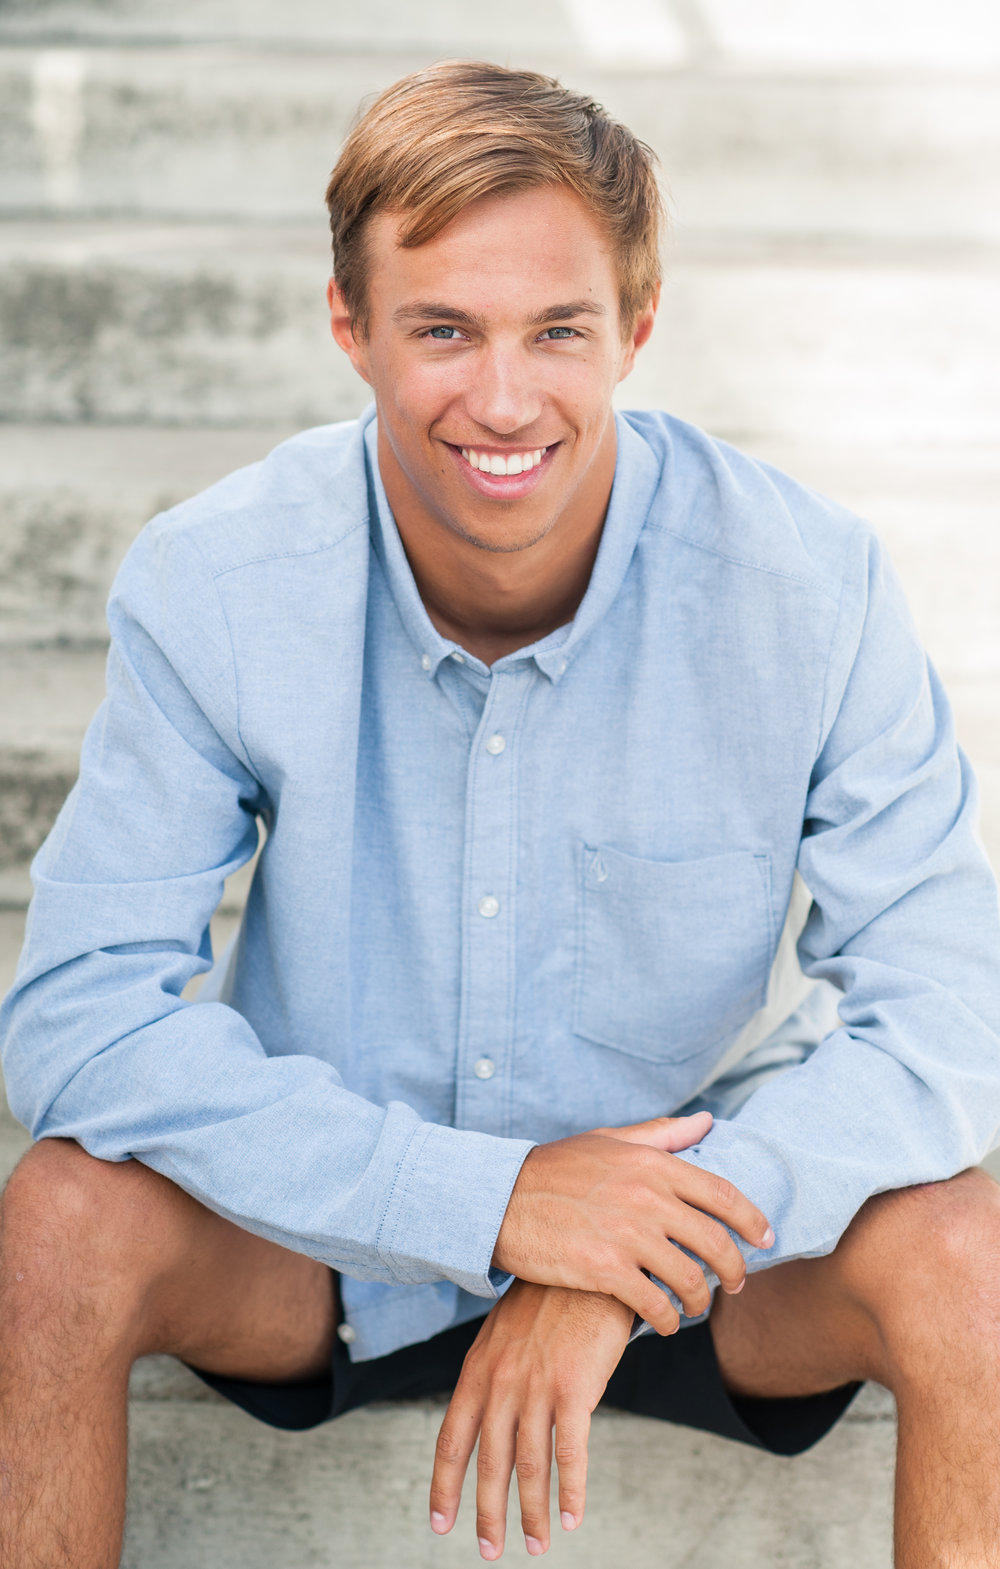 high school senior boy in blue dress shirt beach casual portrait